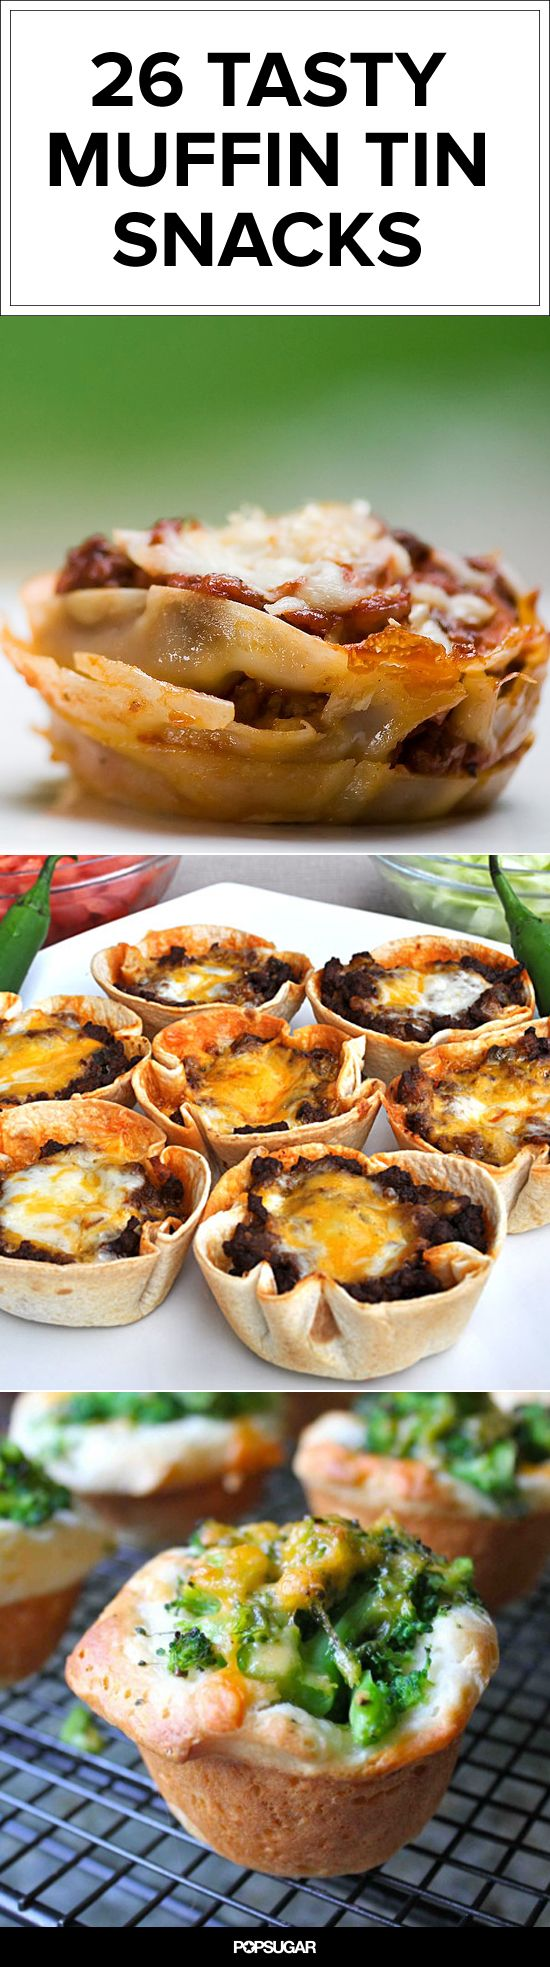 Forum on this topic: Muffin Tin Recipes That Make the Cutest , muffin-tin-recipes-that-make-the-cutest/